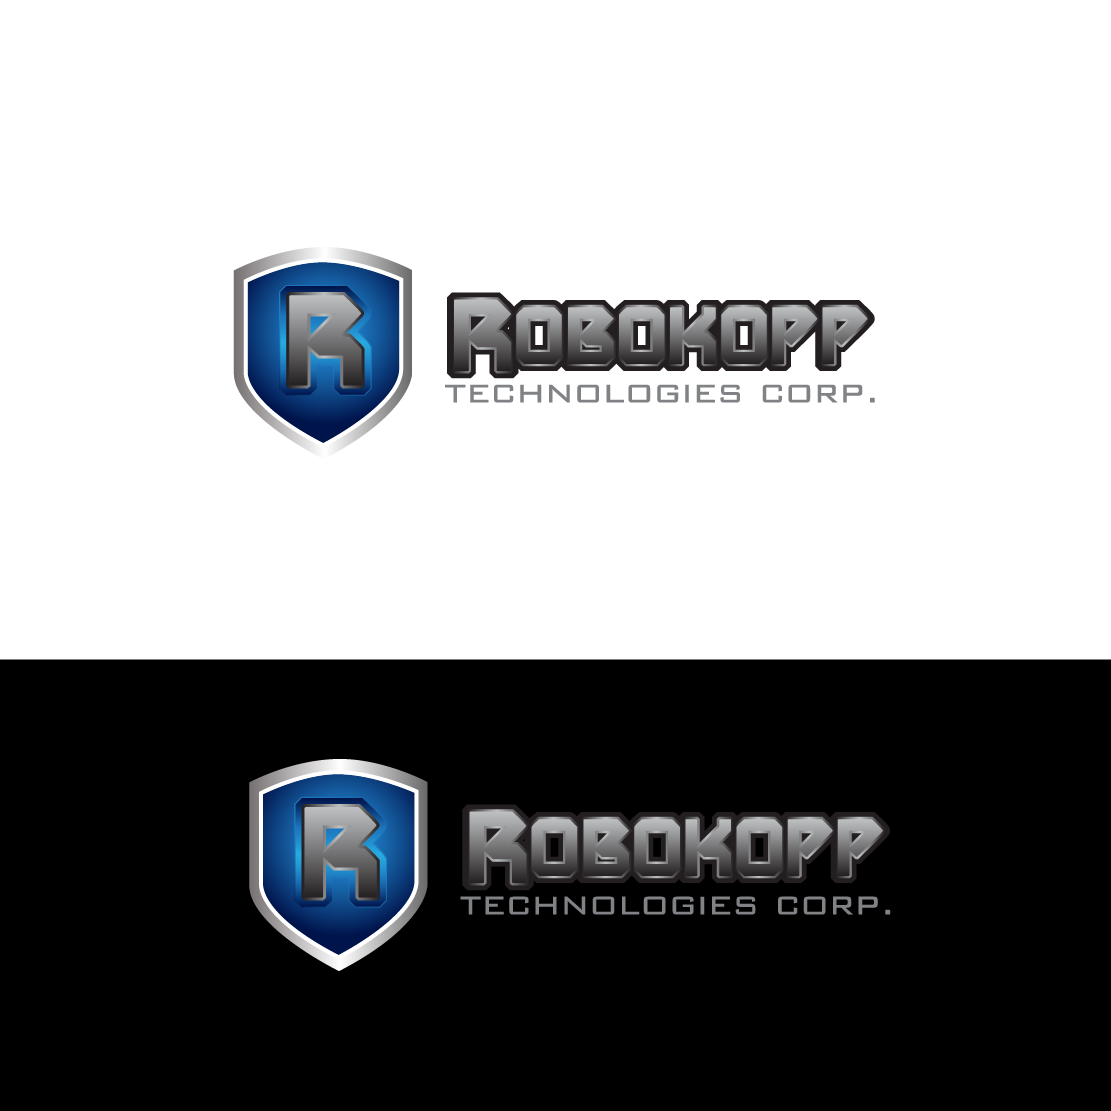 Logo Design by Private User - Entry No. 135 in the Logo Design Contest New Logo Design for Robokopp Technologies Corp..